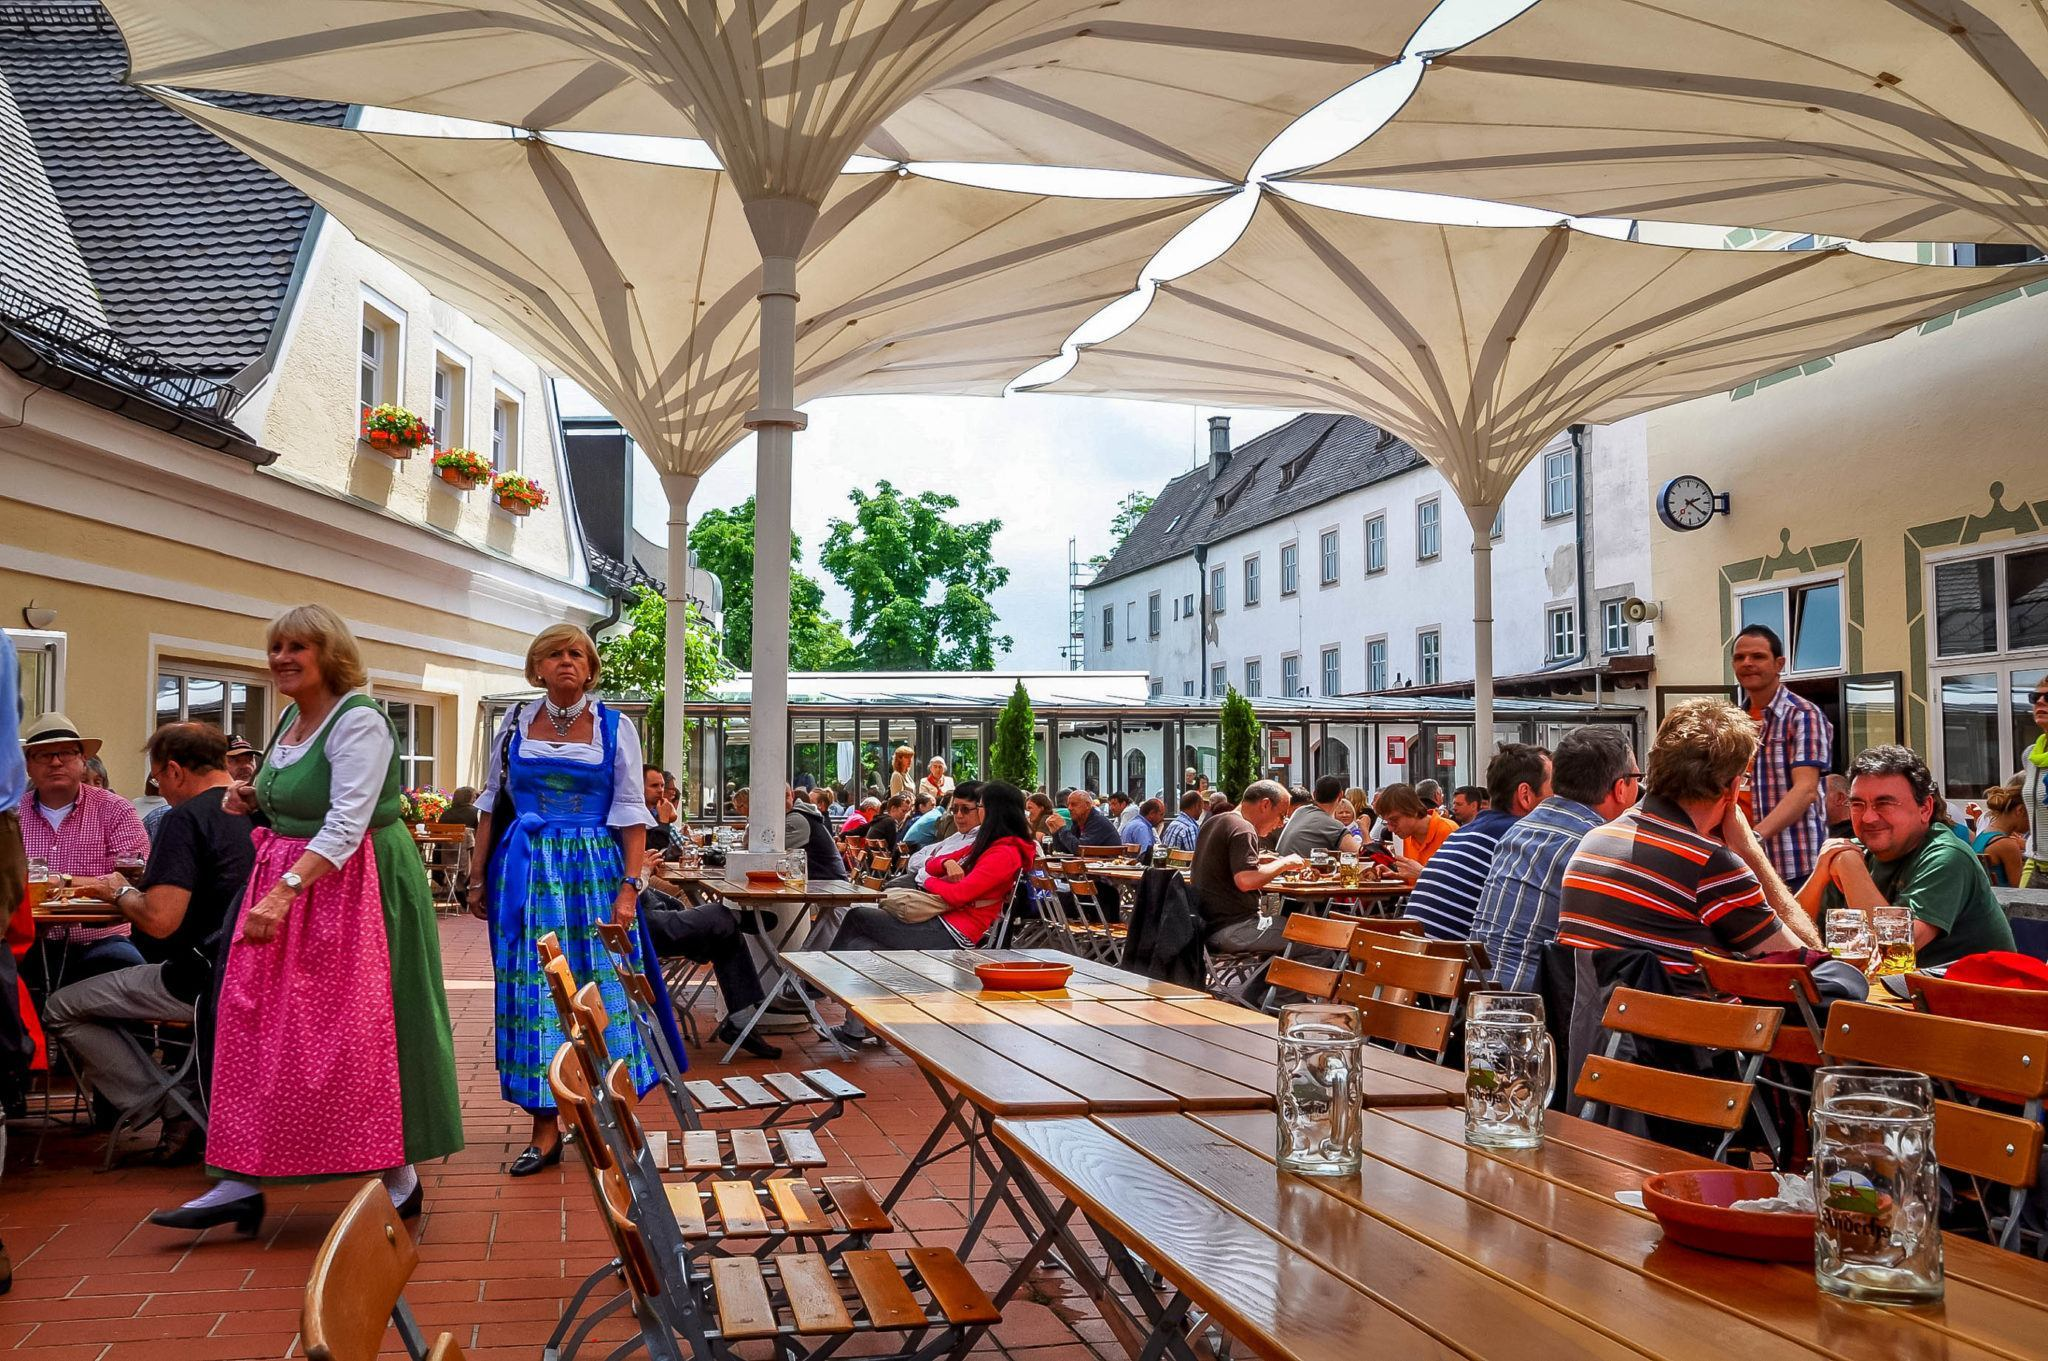 Patio for diners and drinkers at the Andechs Brewery